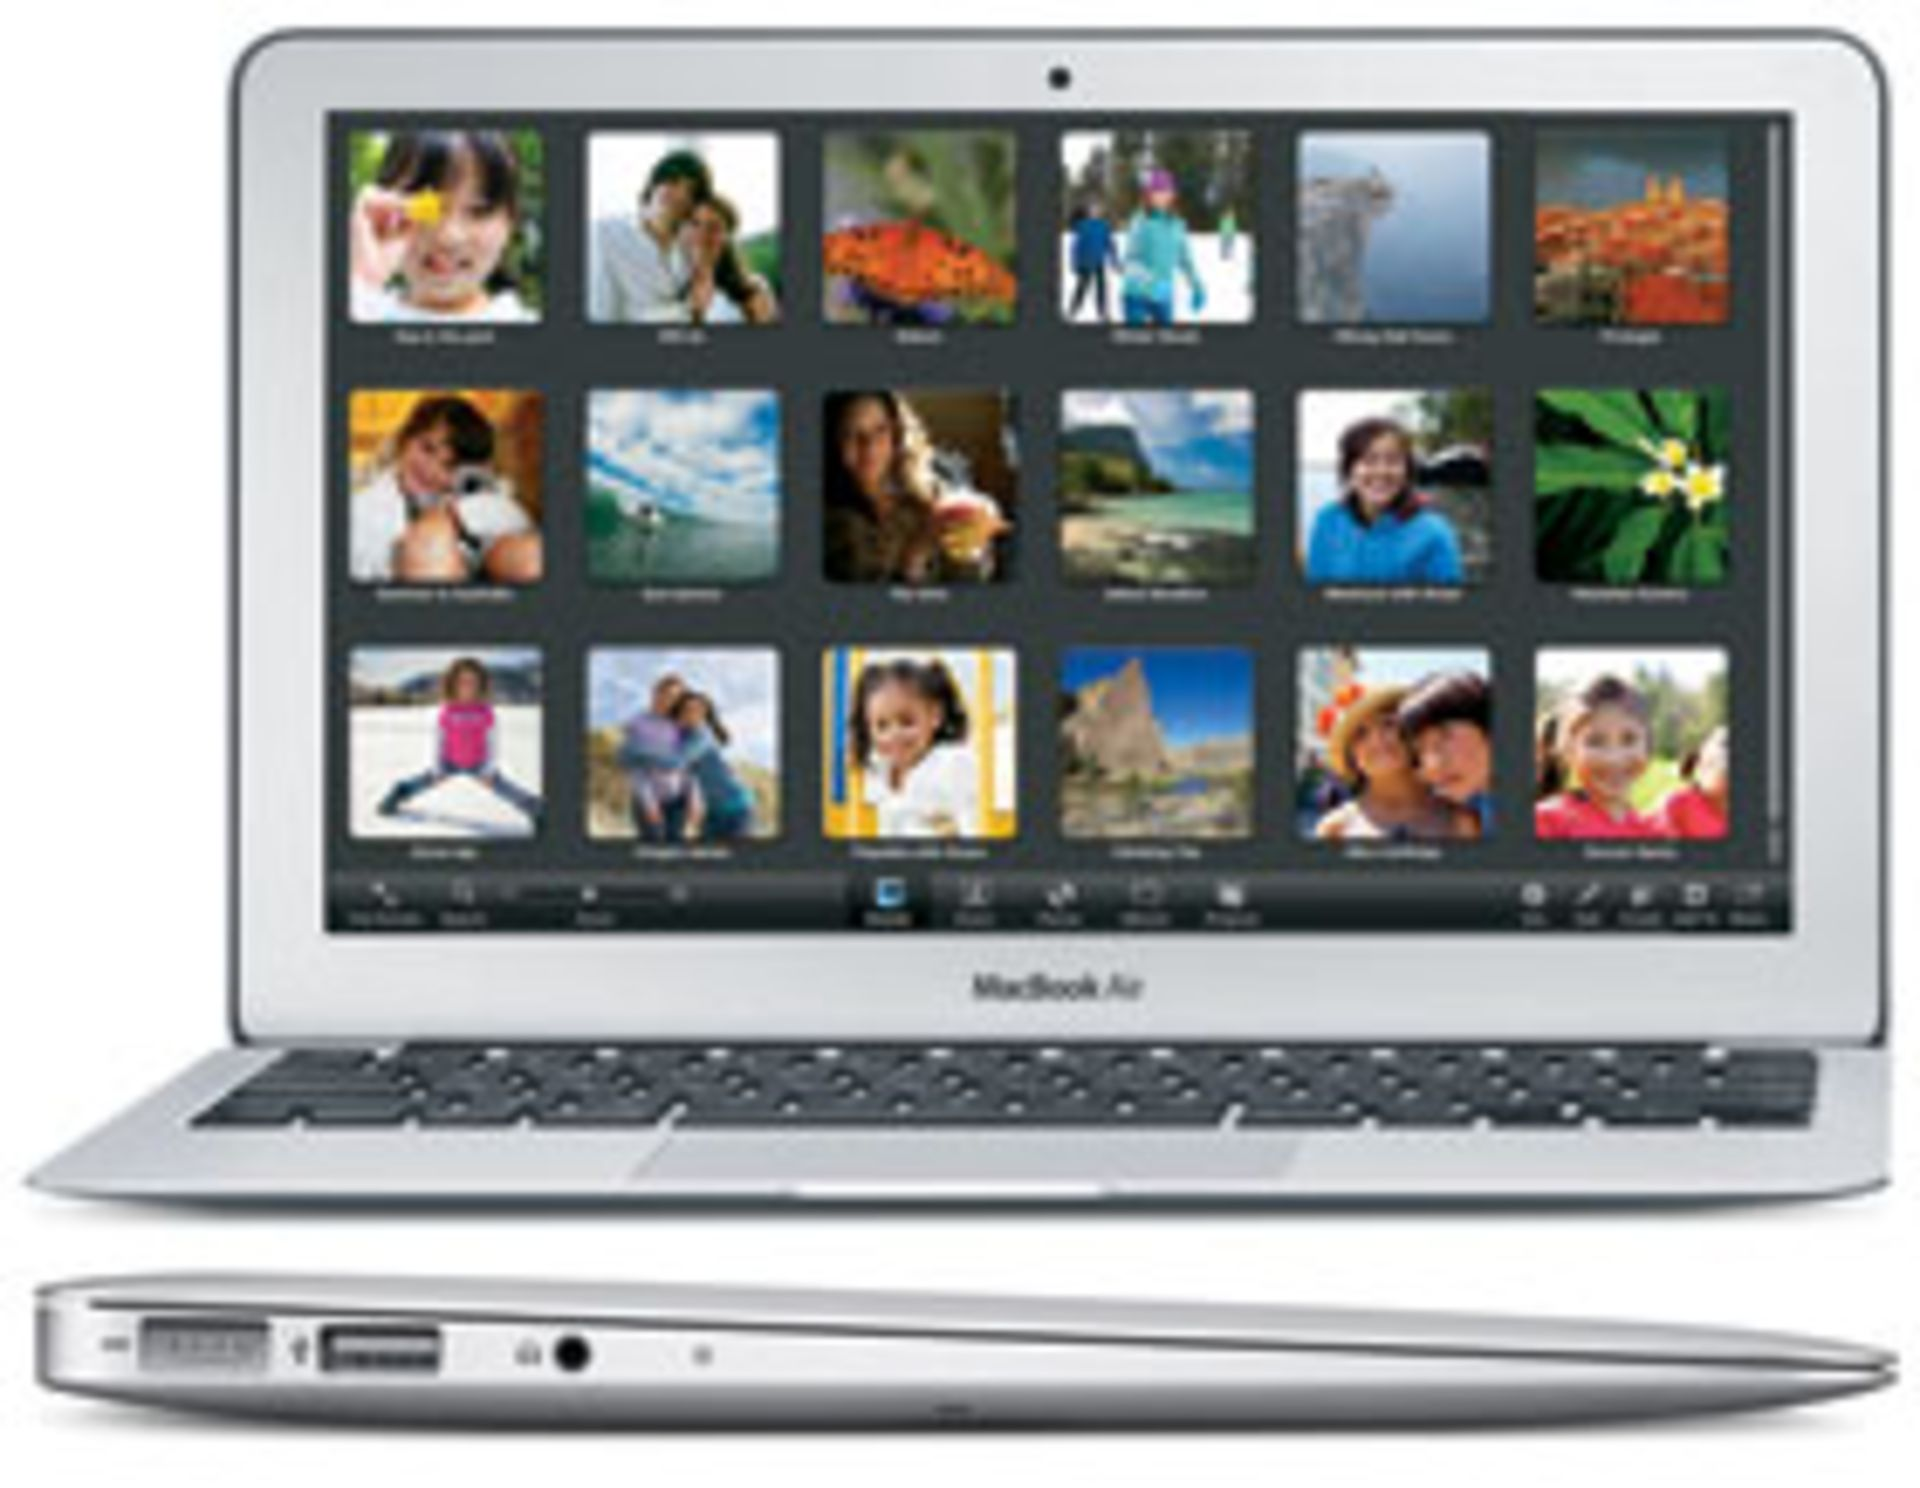 Lot 60030 - V Grade B Macbook Air 11.6 Inch Core 2 Duo - 64GB SSD - A1370 - Available Approx 7 Working Days